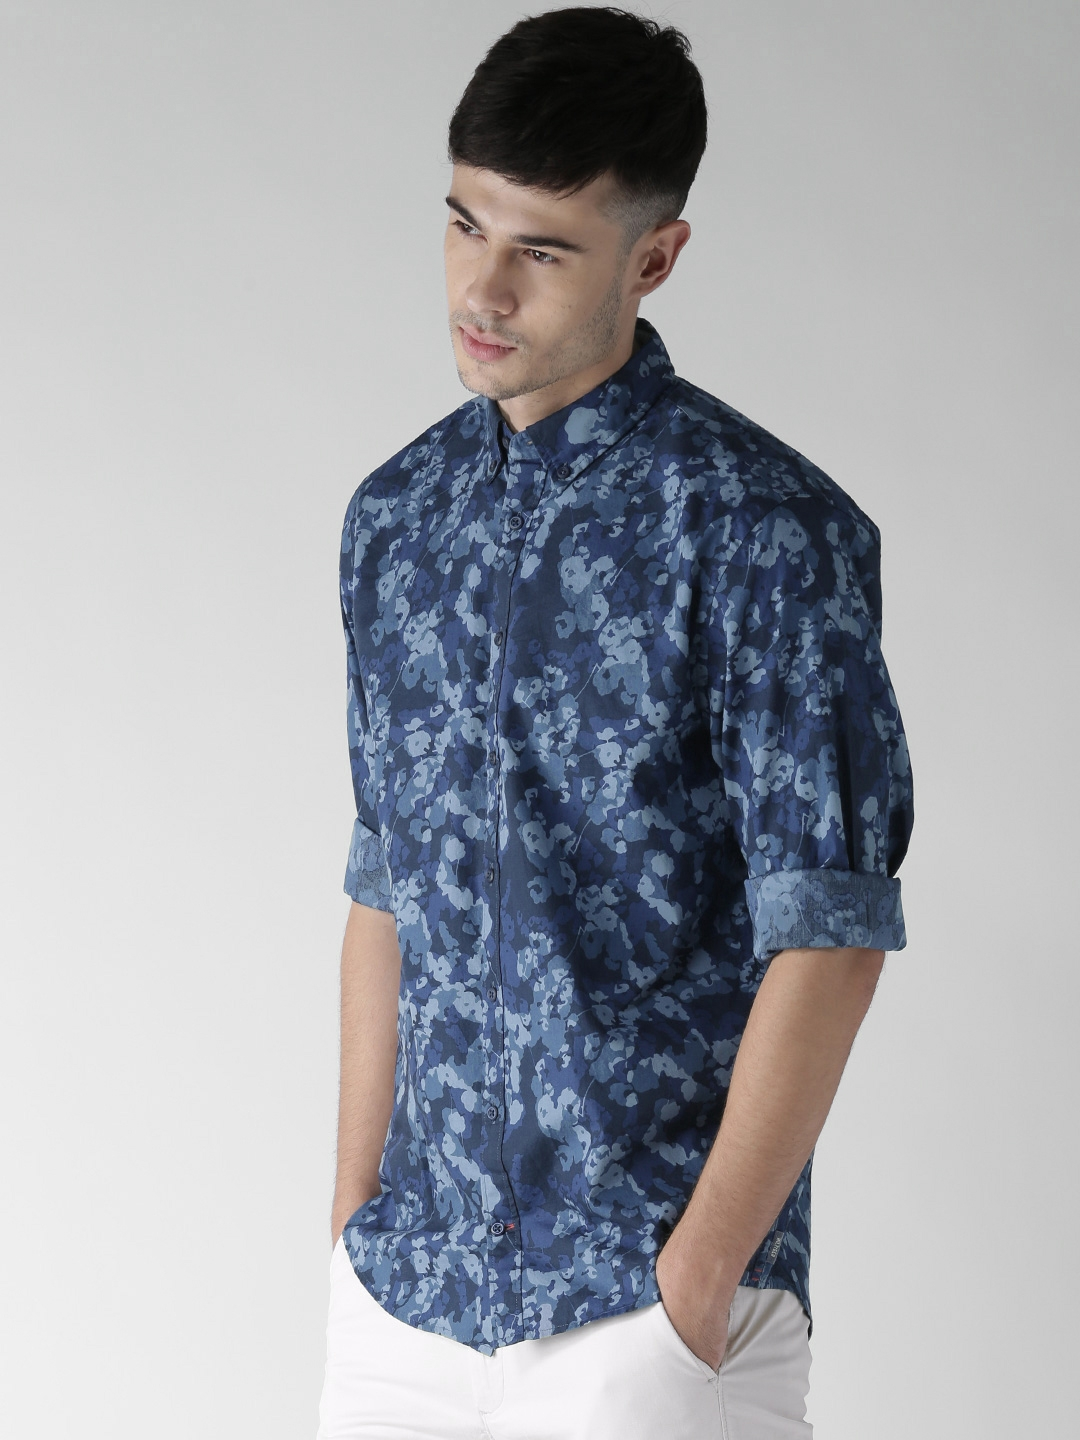 dc710a7c11846 Tommy Hilfiger Blue Printed New York Fit Casual Shirt